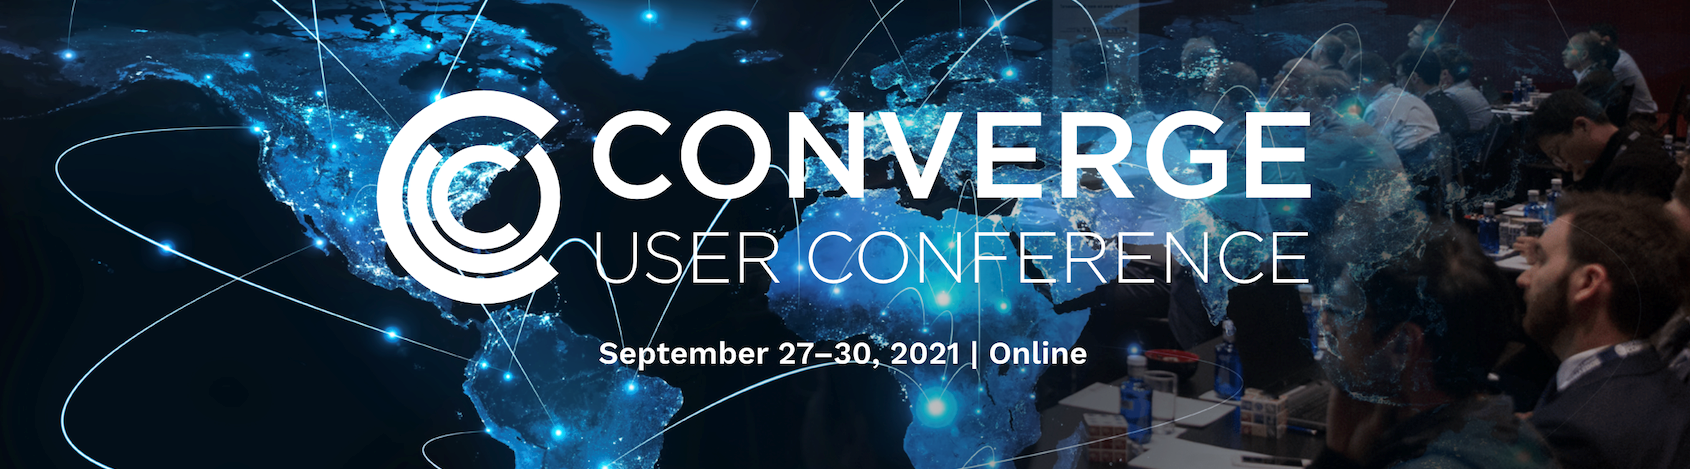 2021 Global CONVERGE User Conference